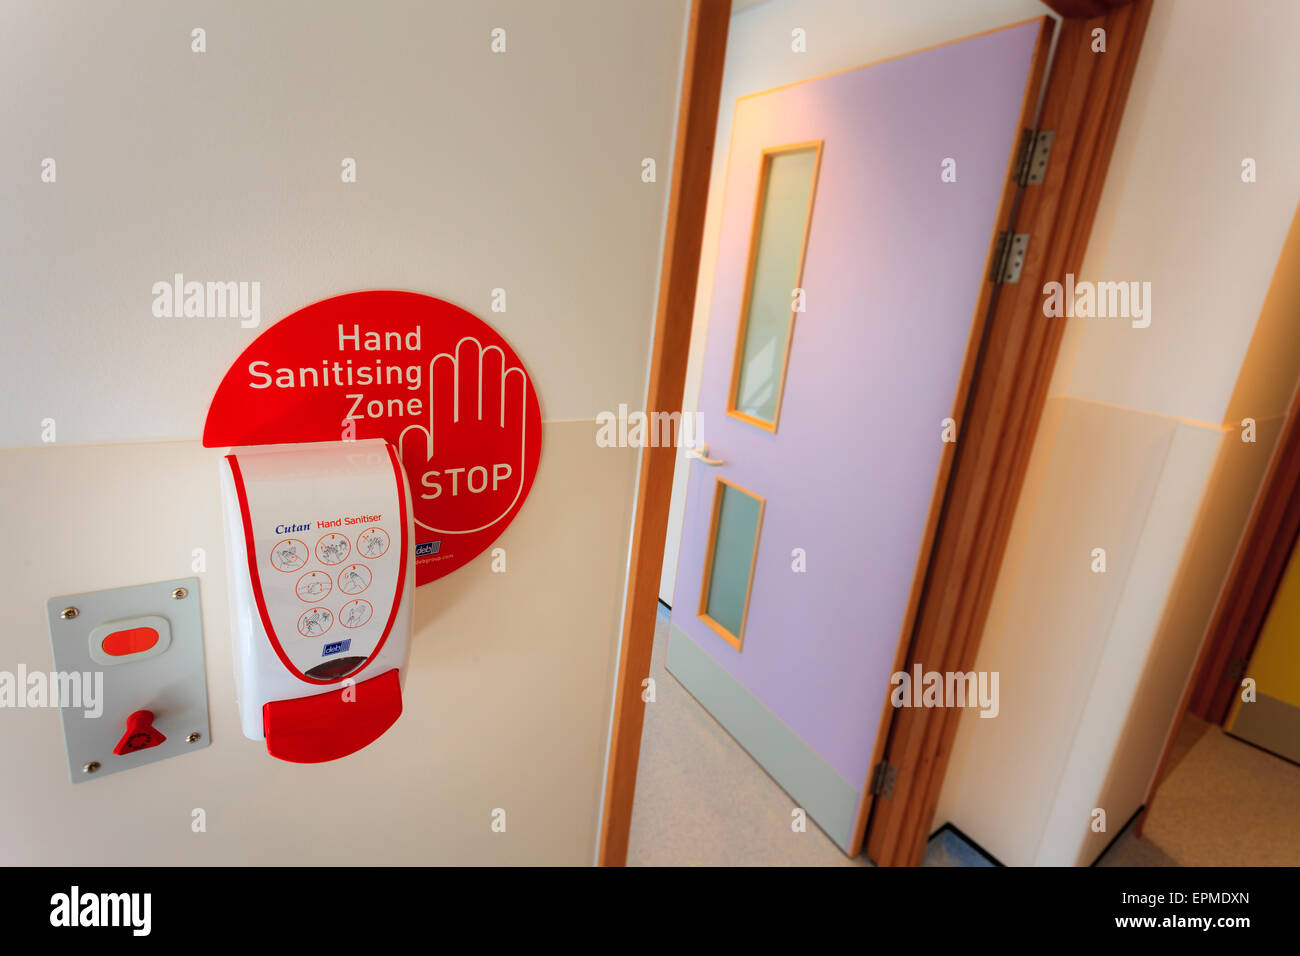 Hand sanitiser station by hospital doorway with hand sanitising zone sign - Stock Image